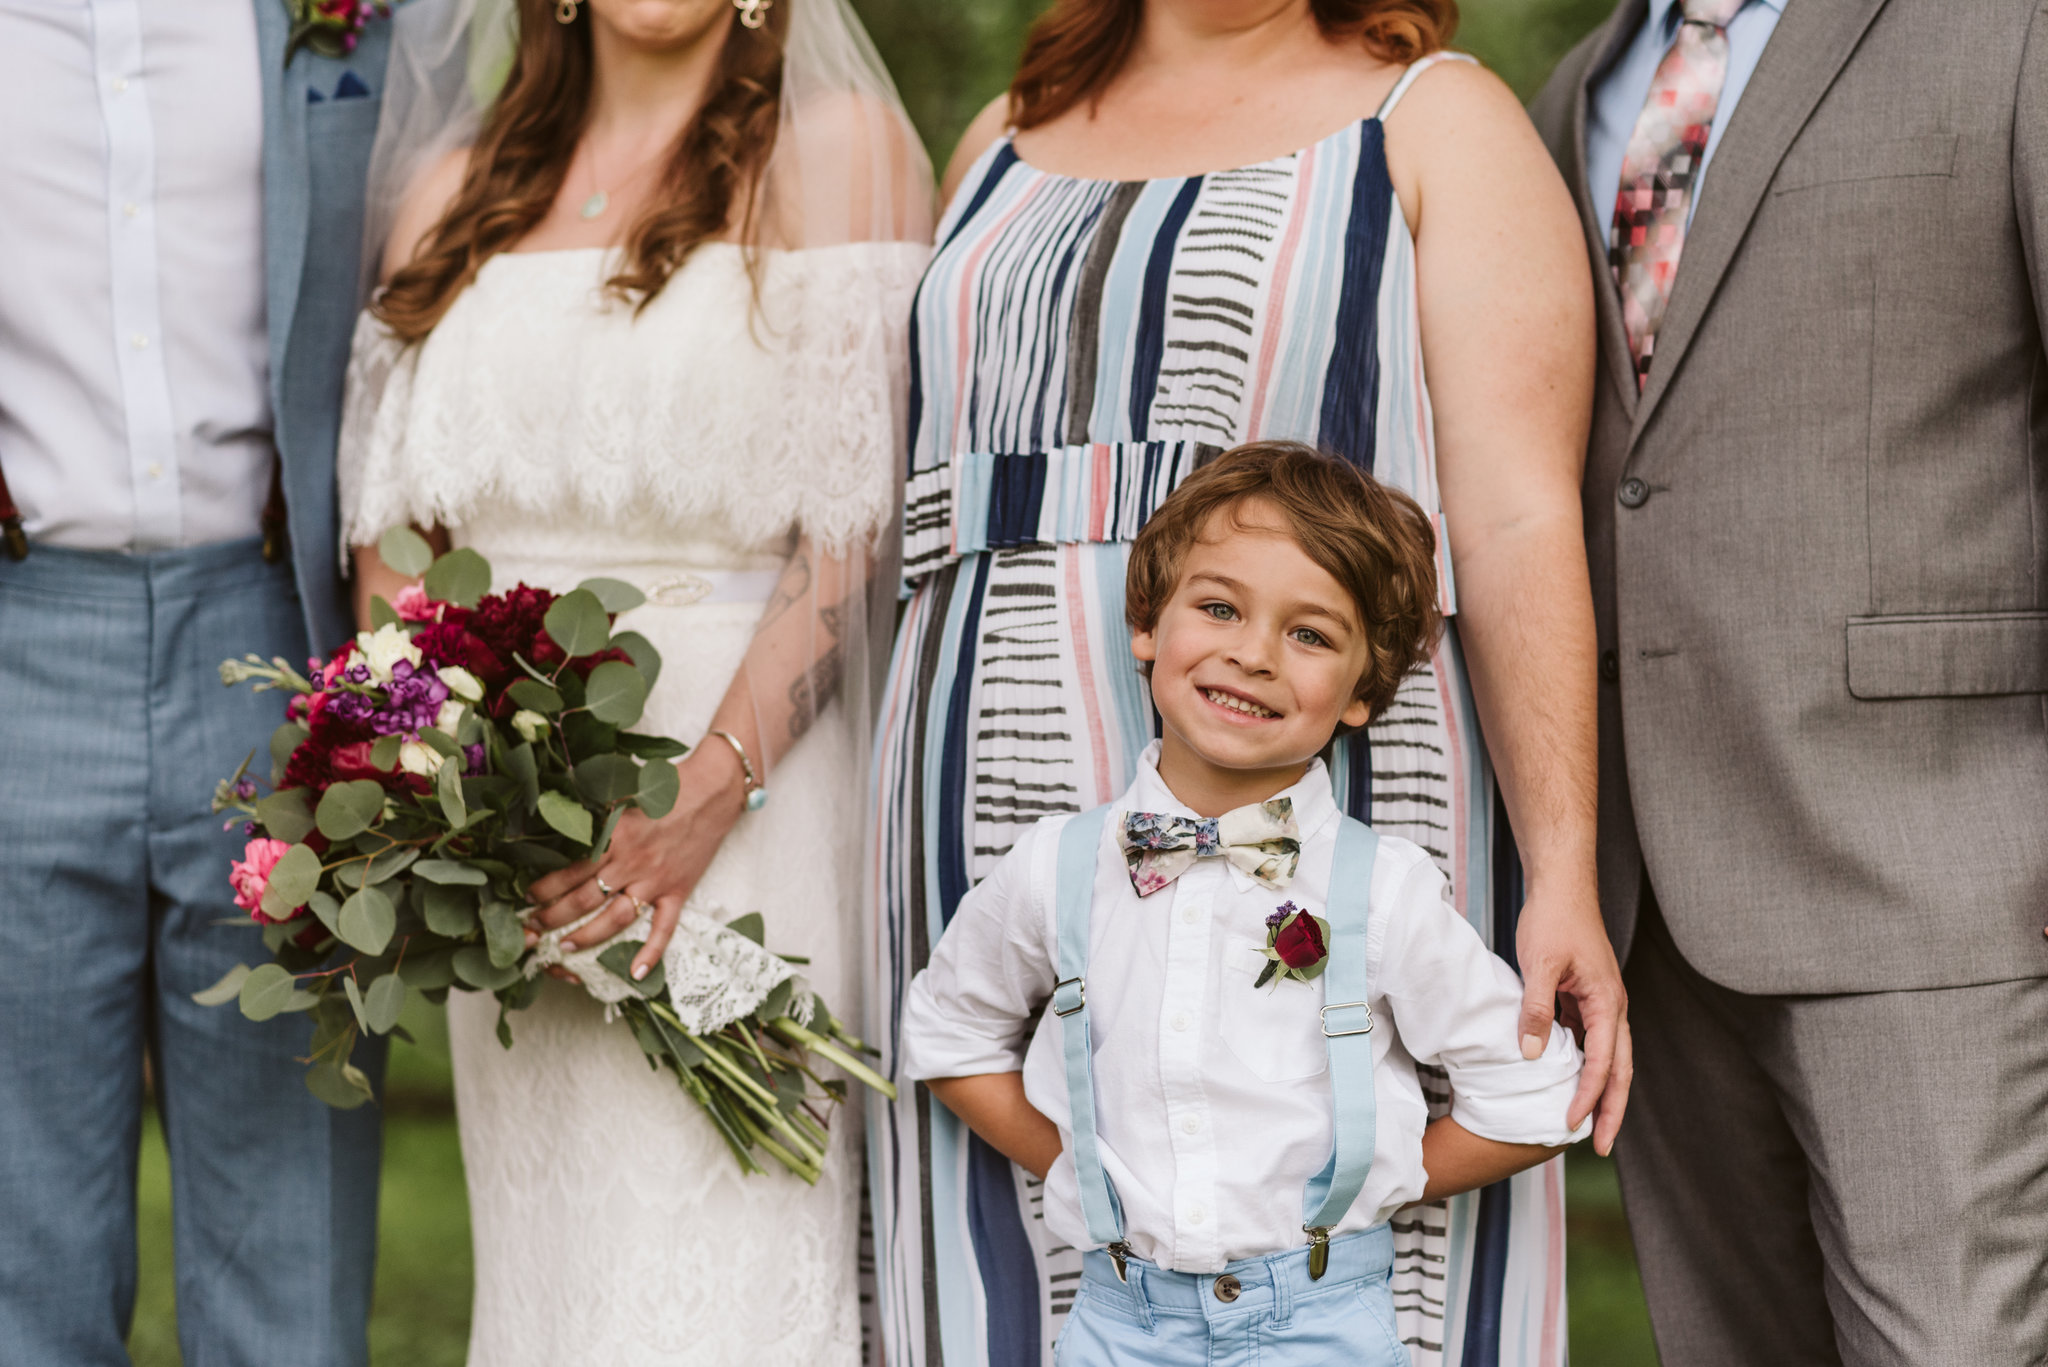 Annapolis, Quaker Wedding, Maryland Wedding Photographer, Intimate, Small Wedding, Vintage, DIY, Ring Bearer, Blue Suspenders, Cute Photo of Boy at Wedding